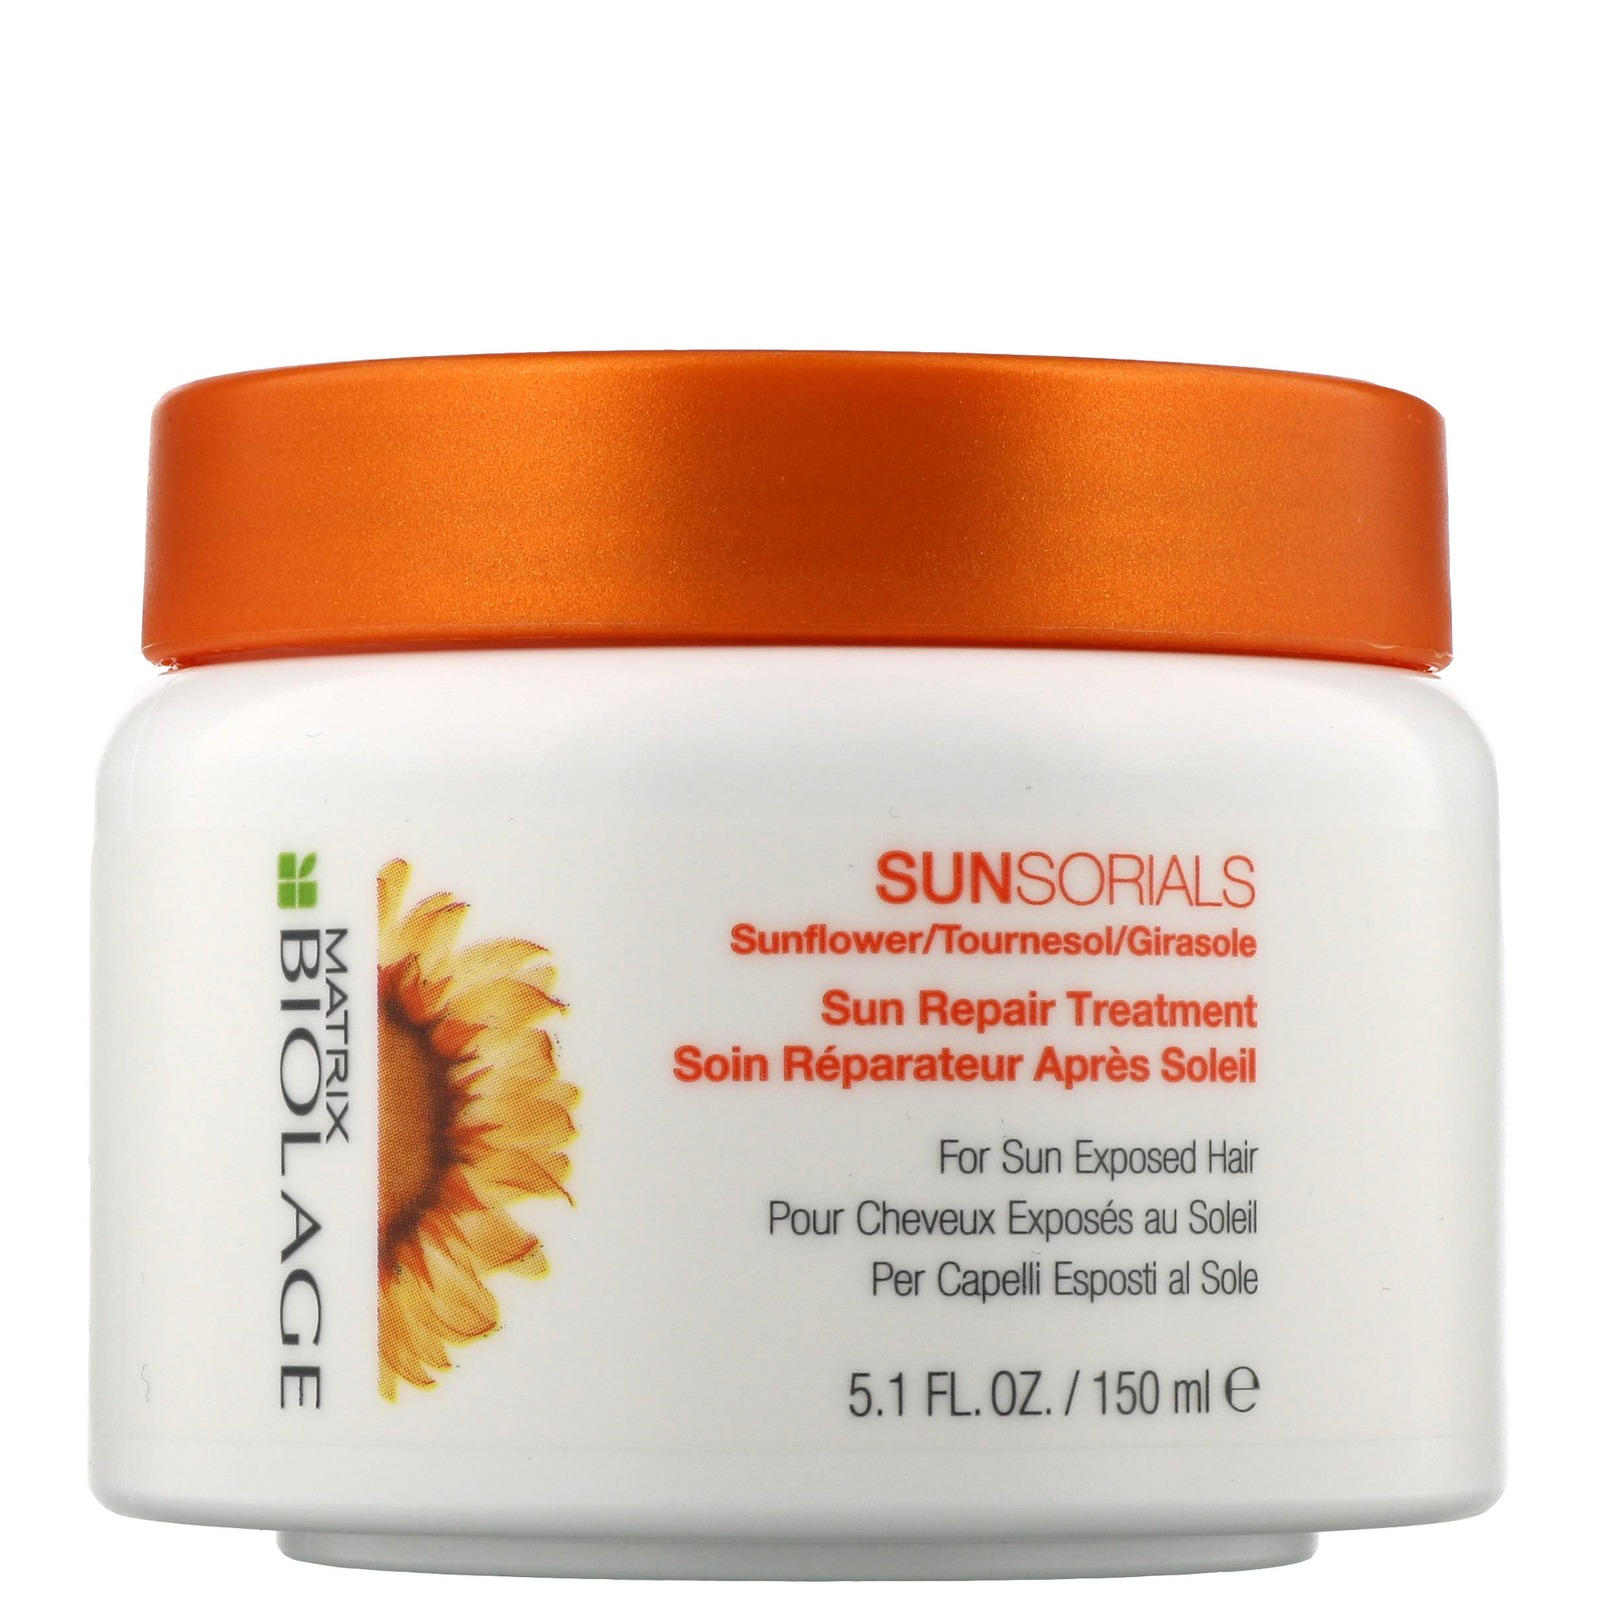 Biolage SunSorials Sun Repair Treatment for Sun-Exposed Hair 150ml